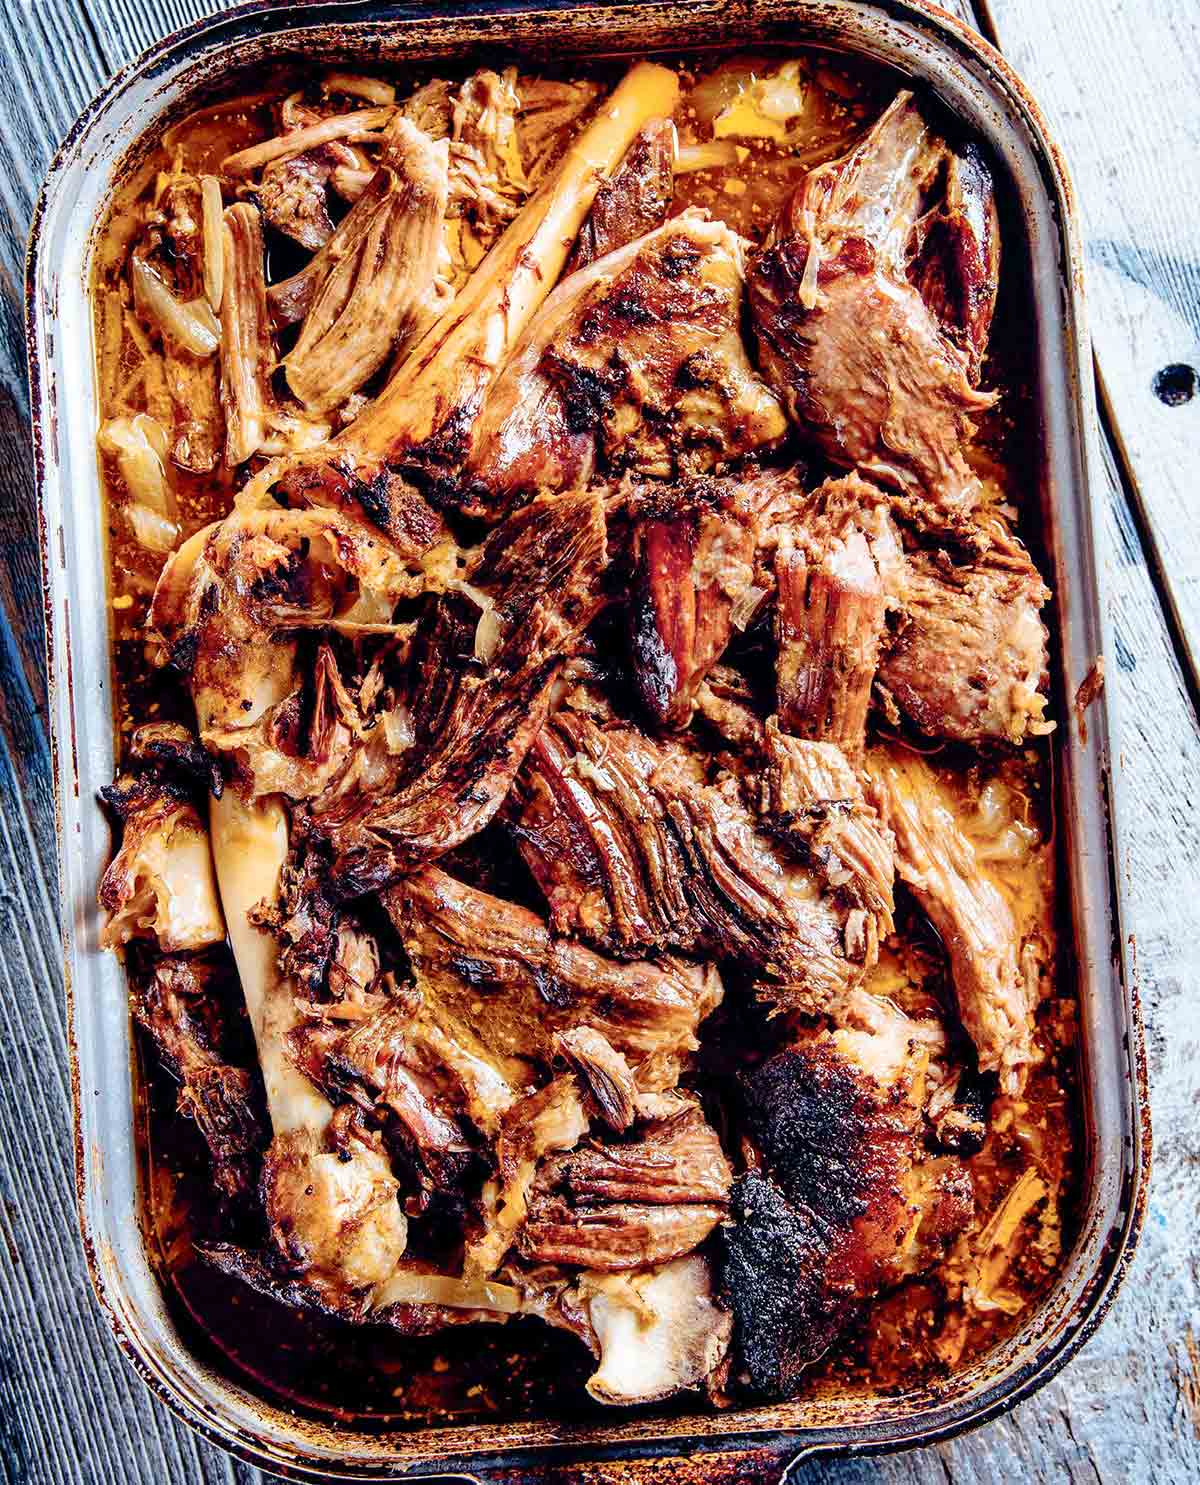 A deep roasting pan filled with shredded lamb barbacoa.